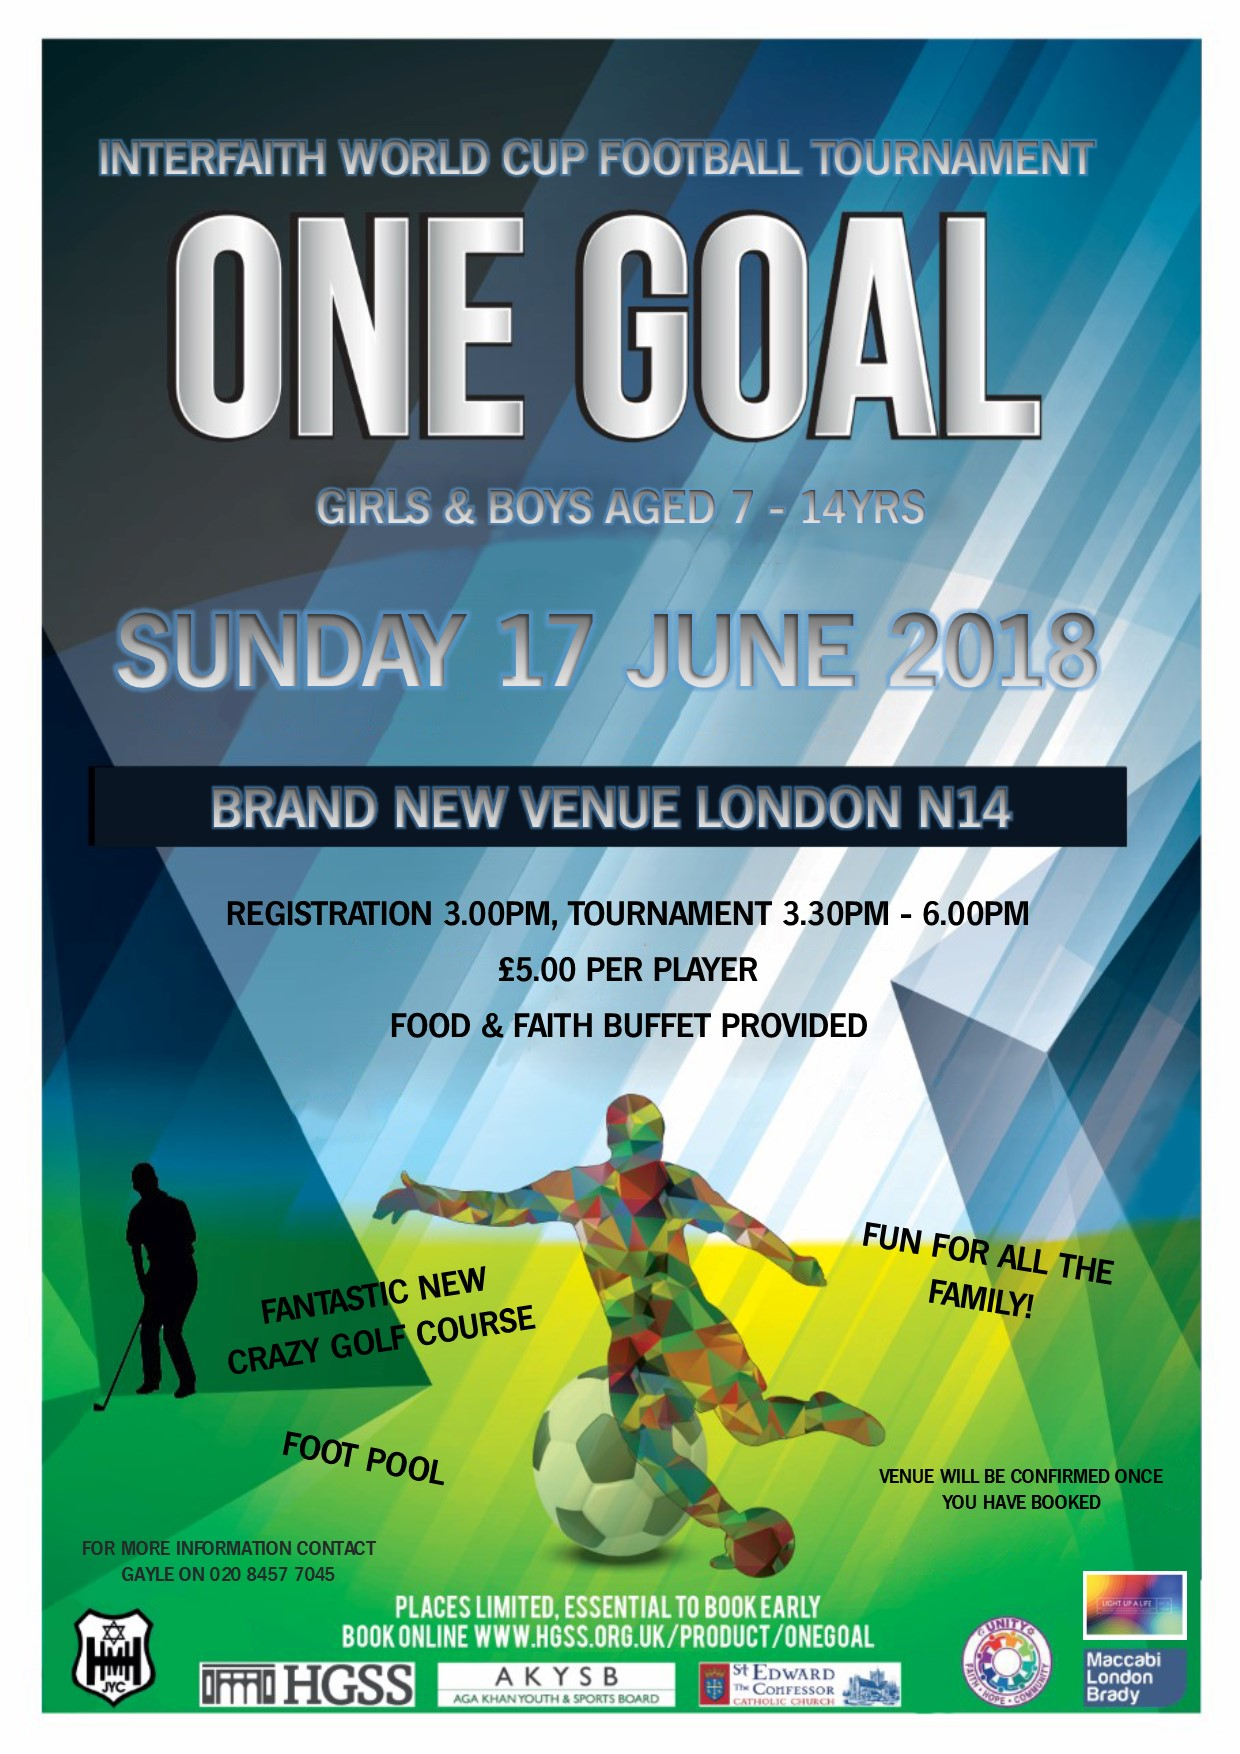 One Goal Interfaith Football Tournament @ England | United Kingdom